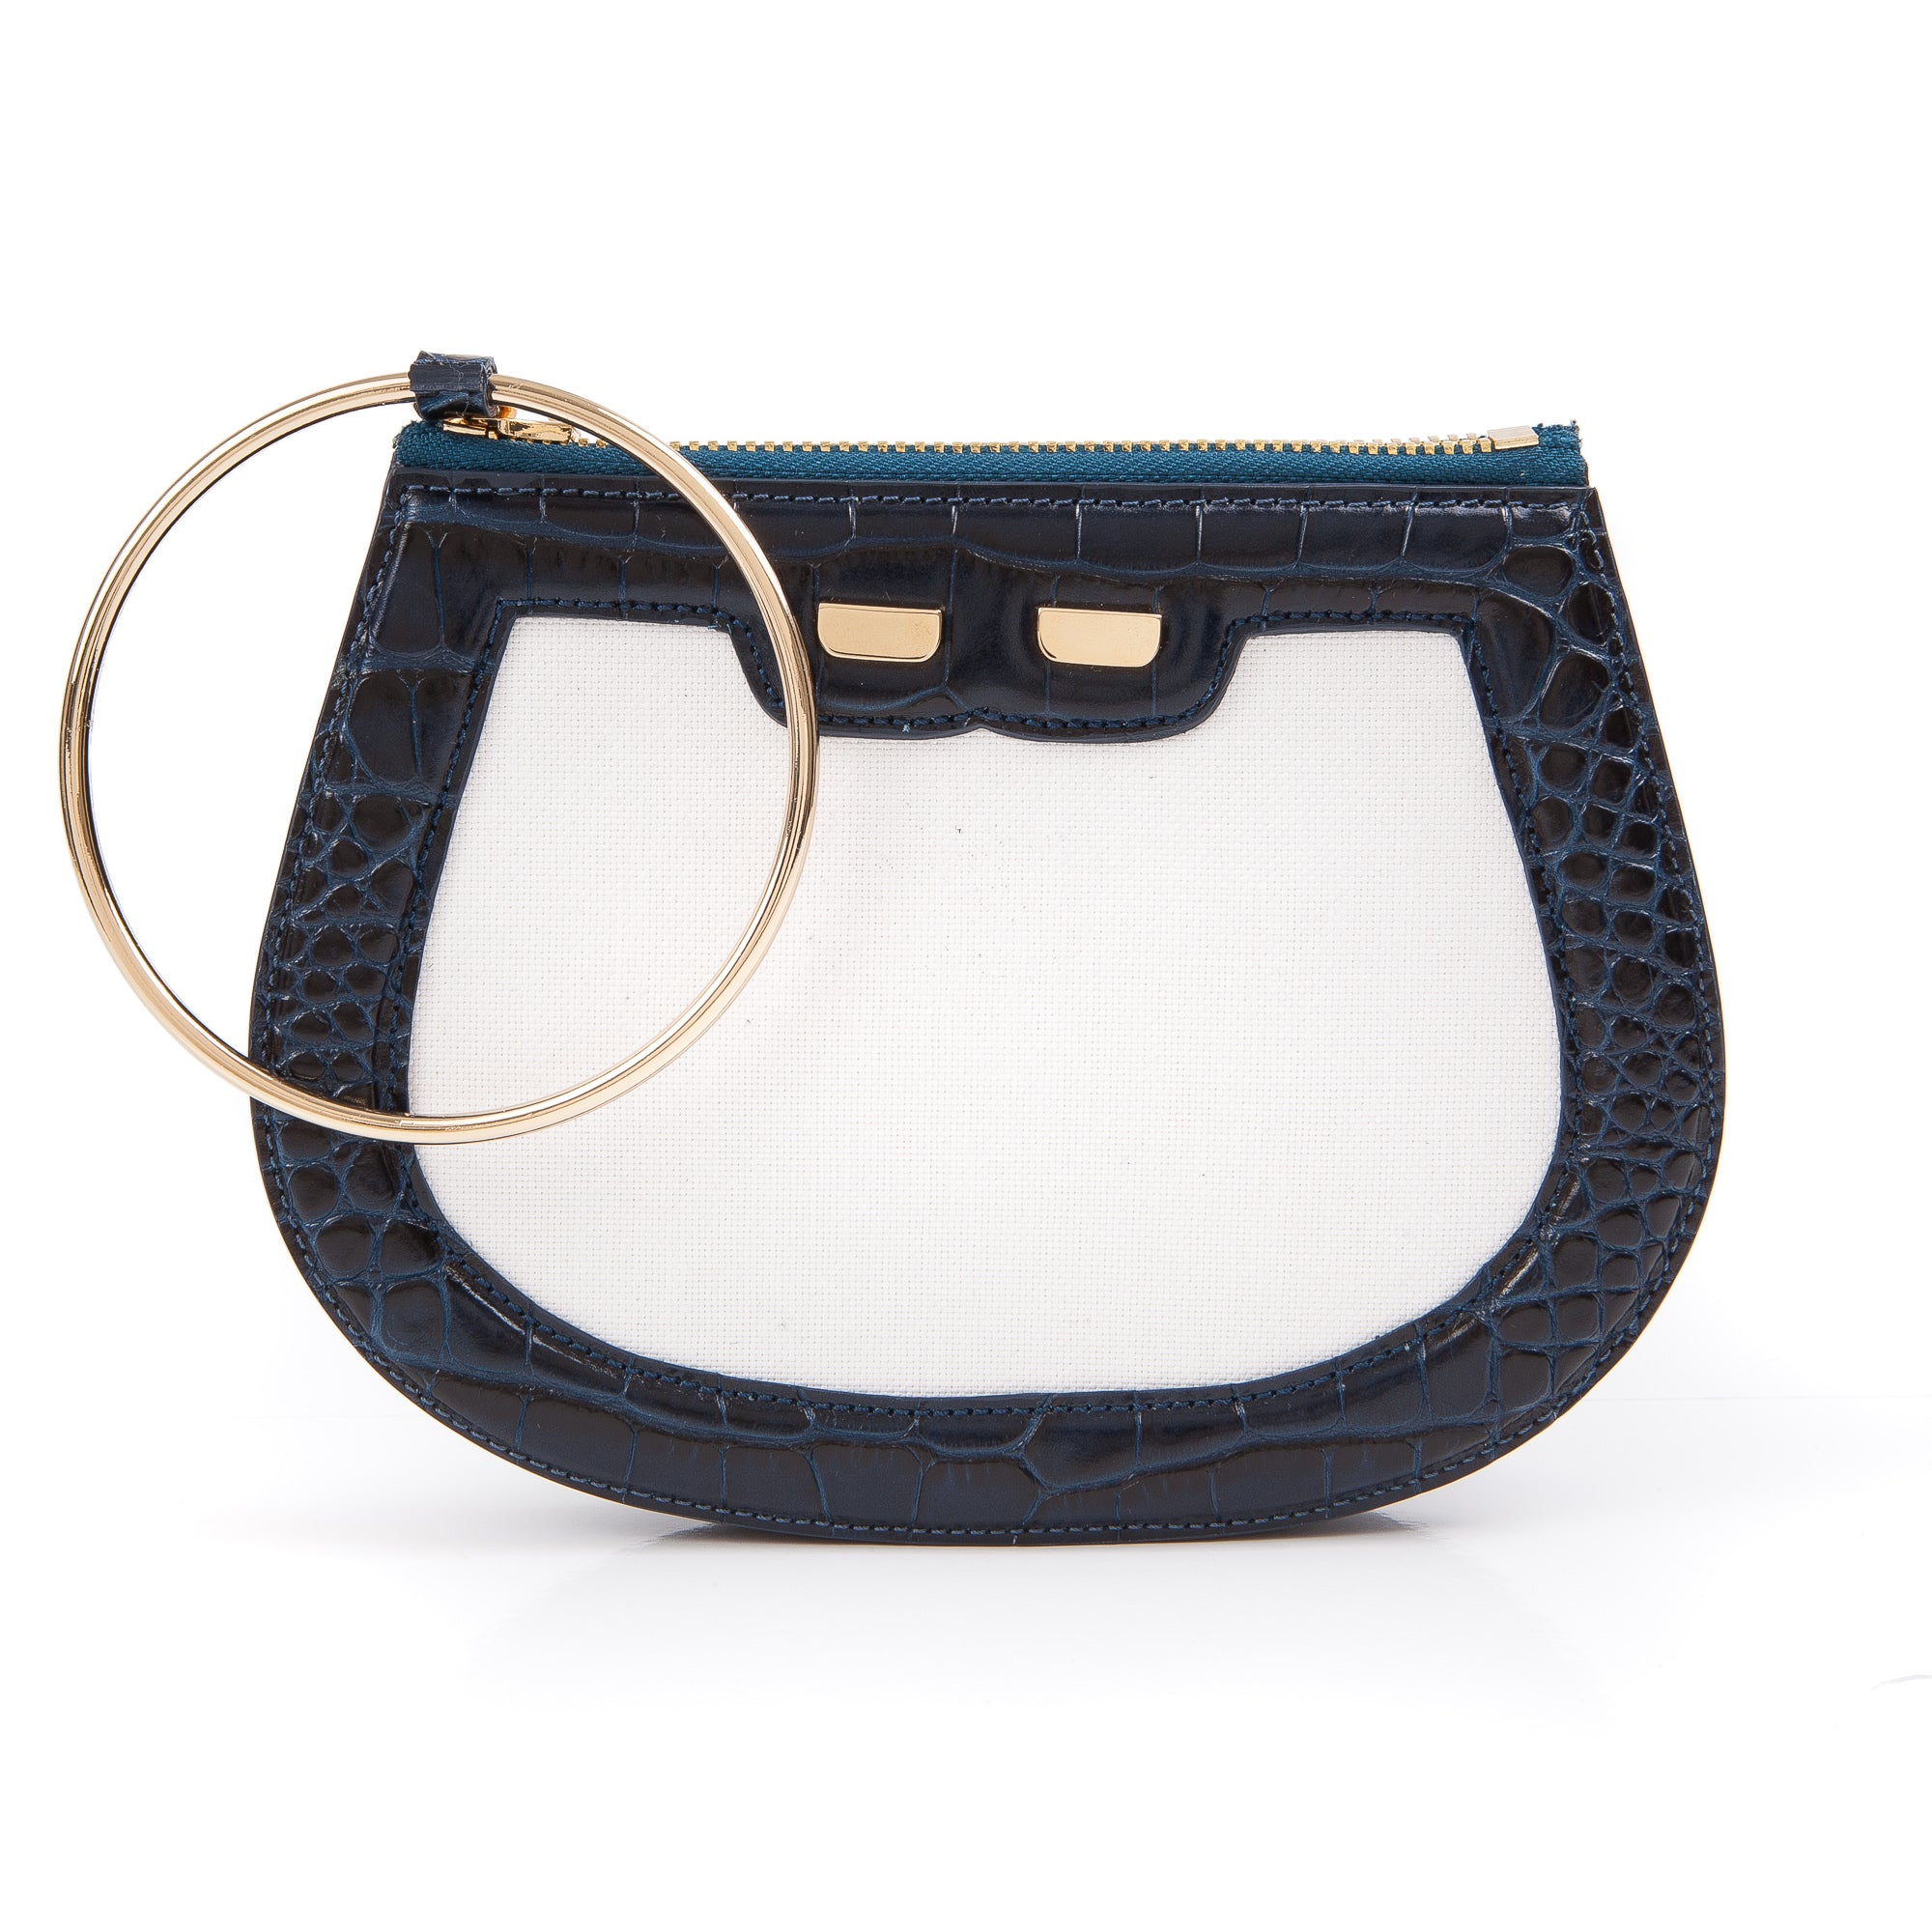 Ellie Bangle in Canvas & Navy Gator